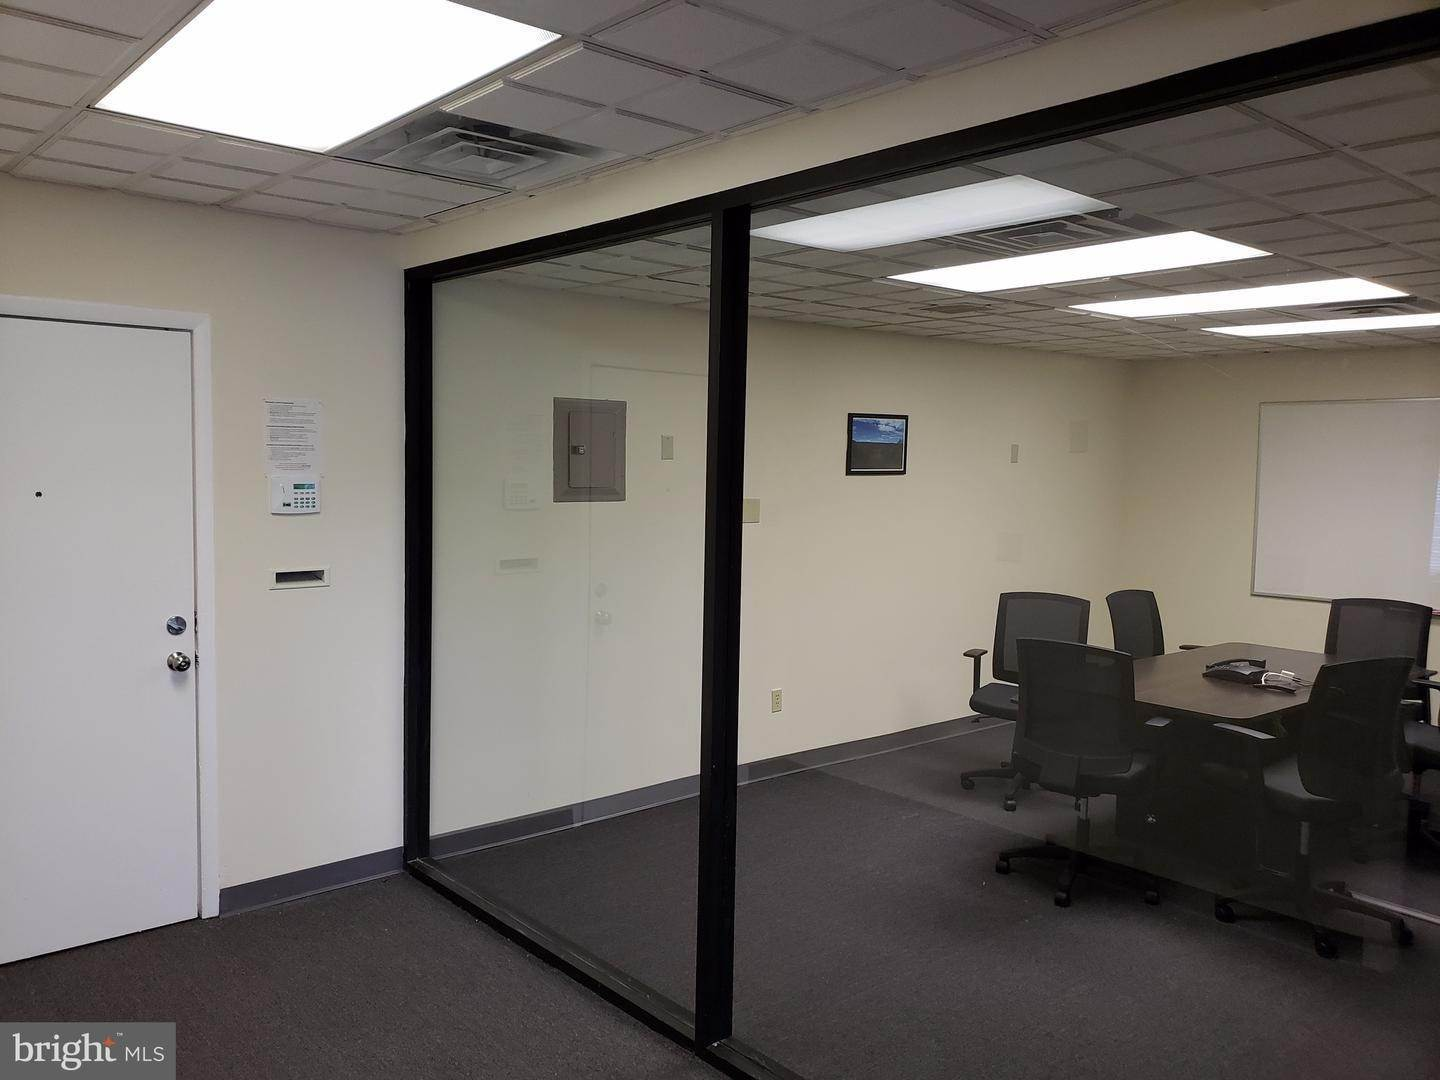 17. Offices for Sale at 1130-1136 HAMILTON Street Allentown, Pennsylvania 18101 United States